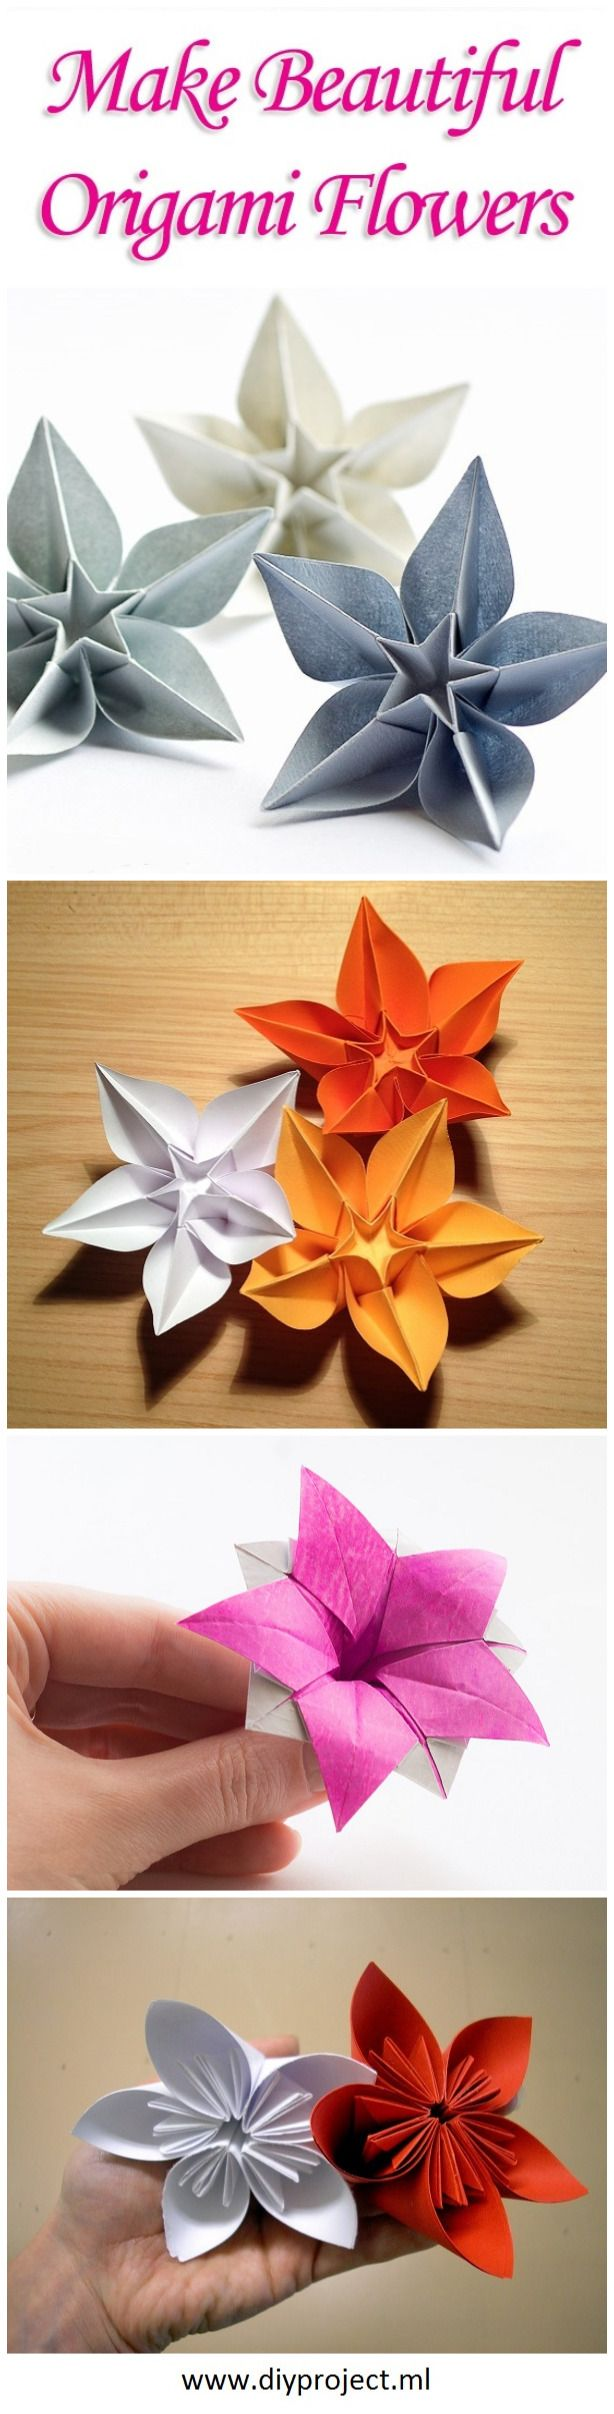 Make DIY Origami Flowers From a Single Sheet of Paper Without Glue. Visit: http://diyproject.ml/make-diy-origami-flowers-from-a-single-sheet-of-paper-without-glue/